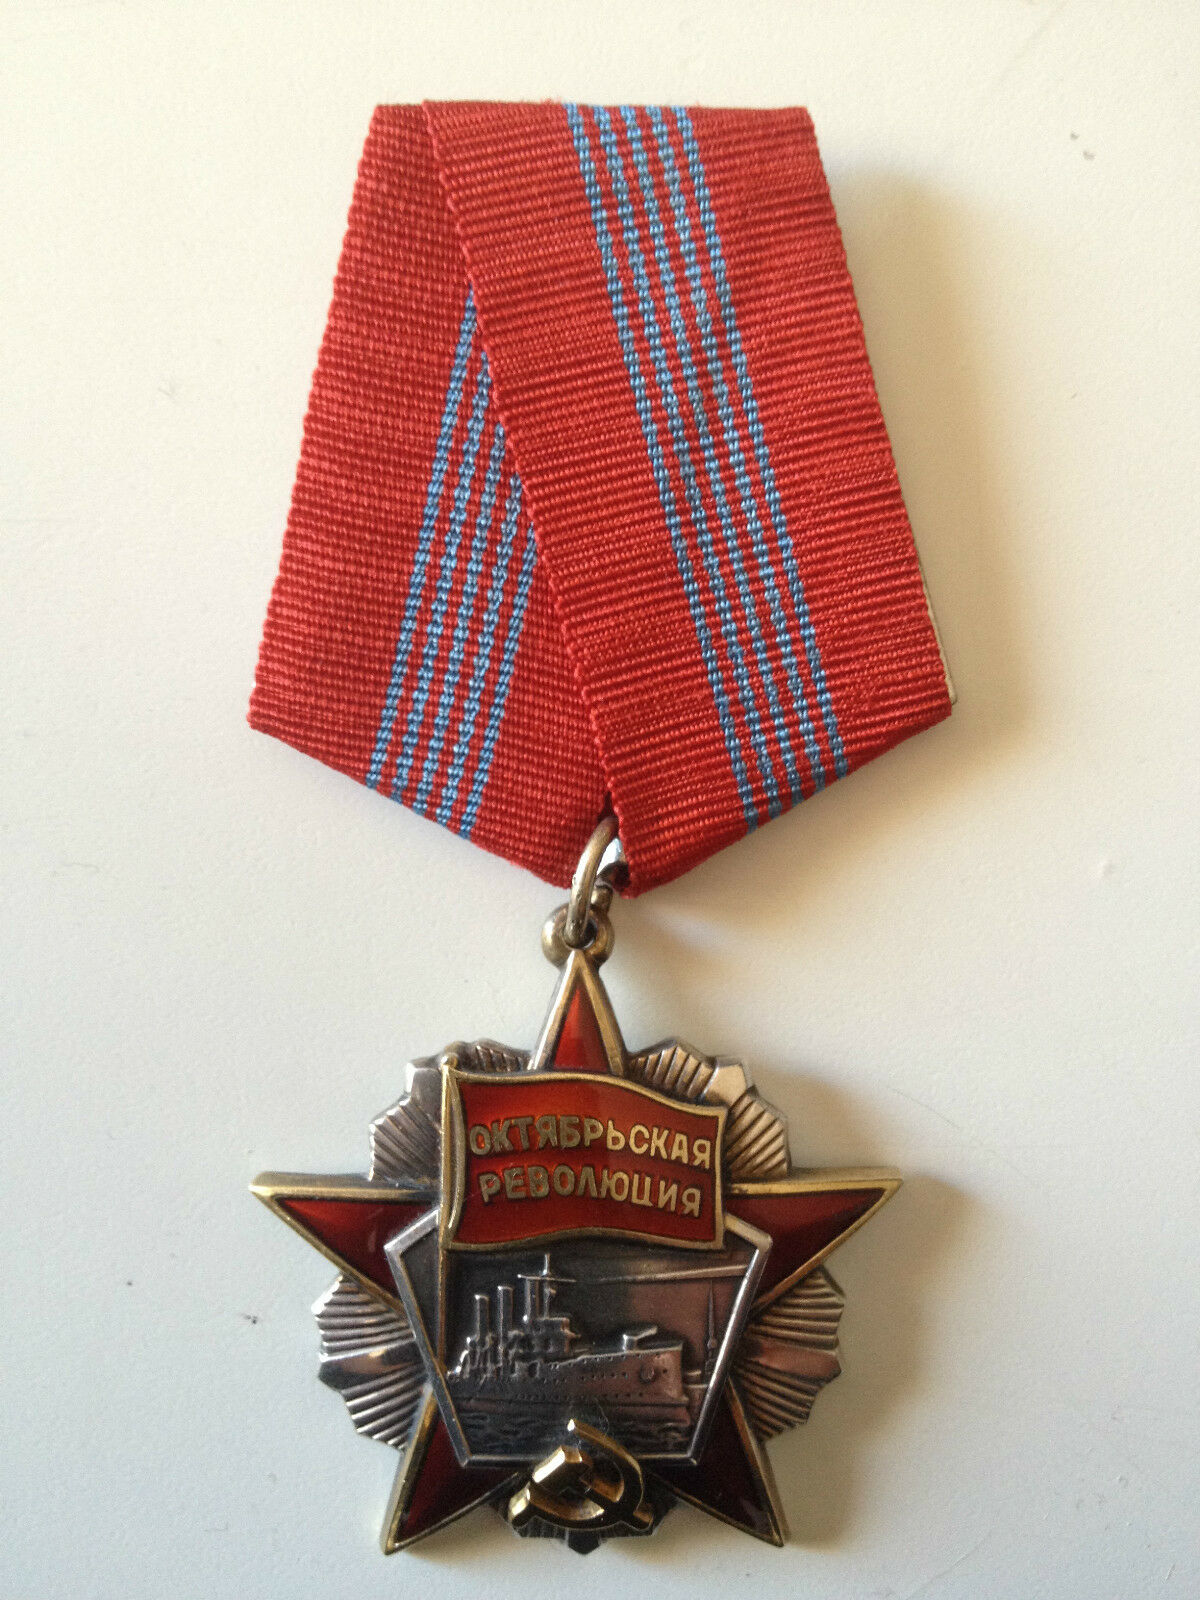 SOVIETICO RUSSIAN MEDAL ORDER OF THE OTTOBRE REVOLUTION VAR 5 RIVET NR. 79174